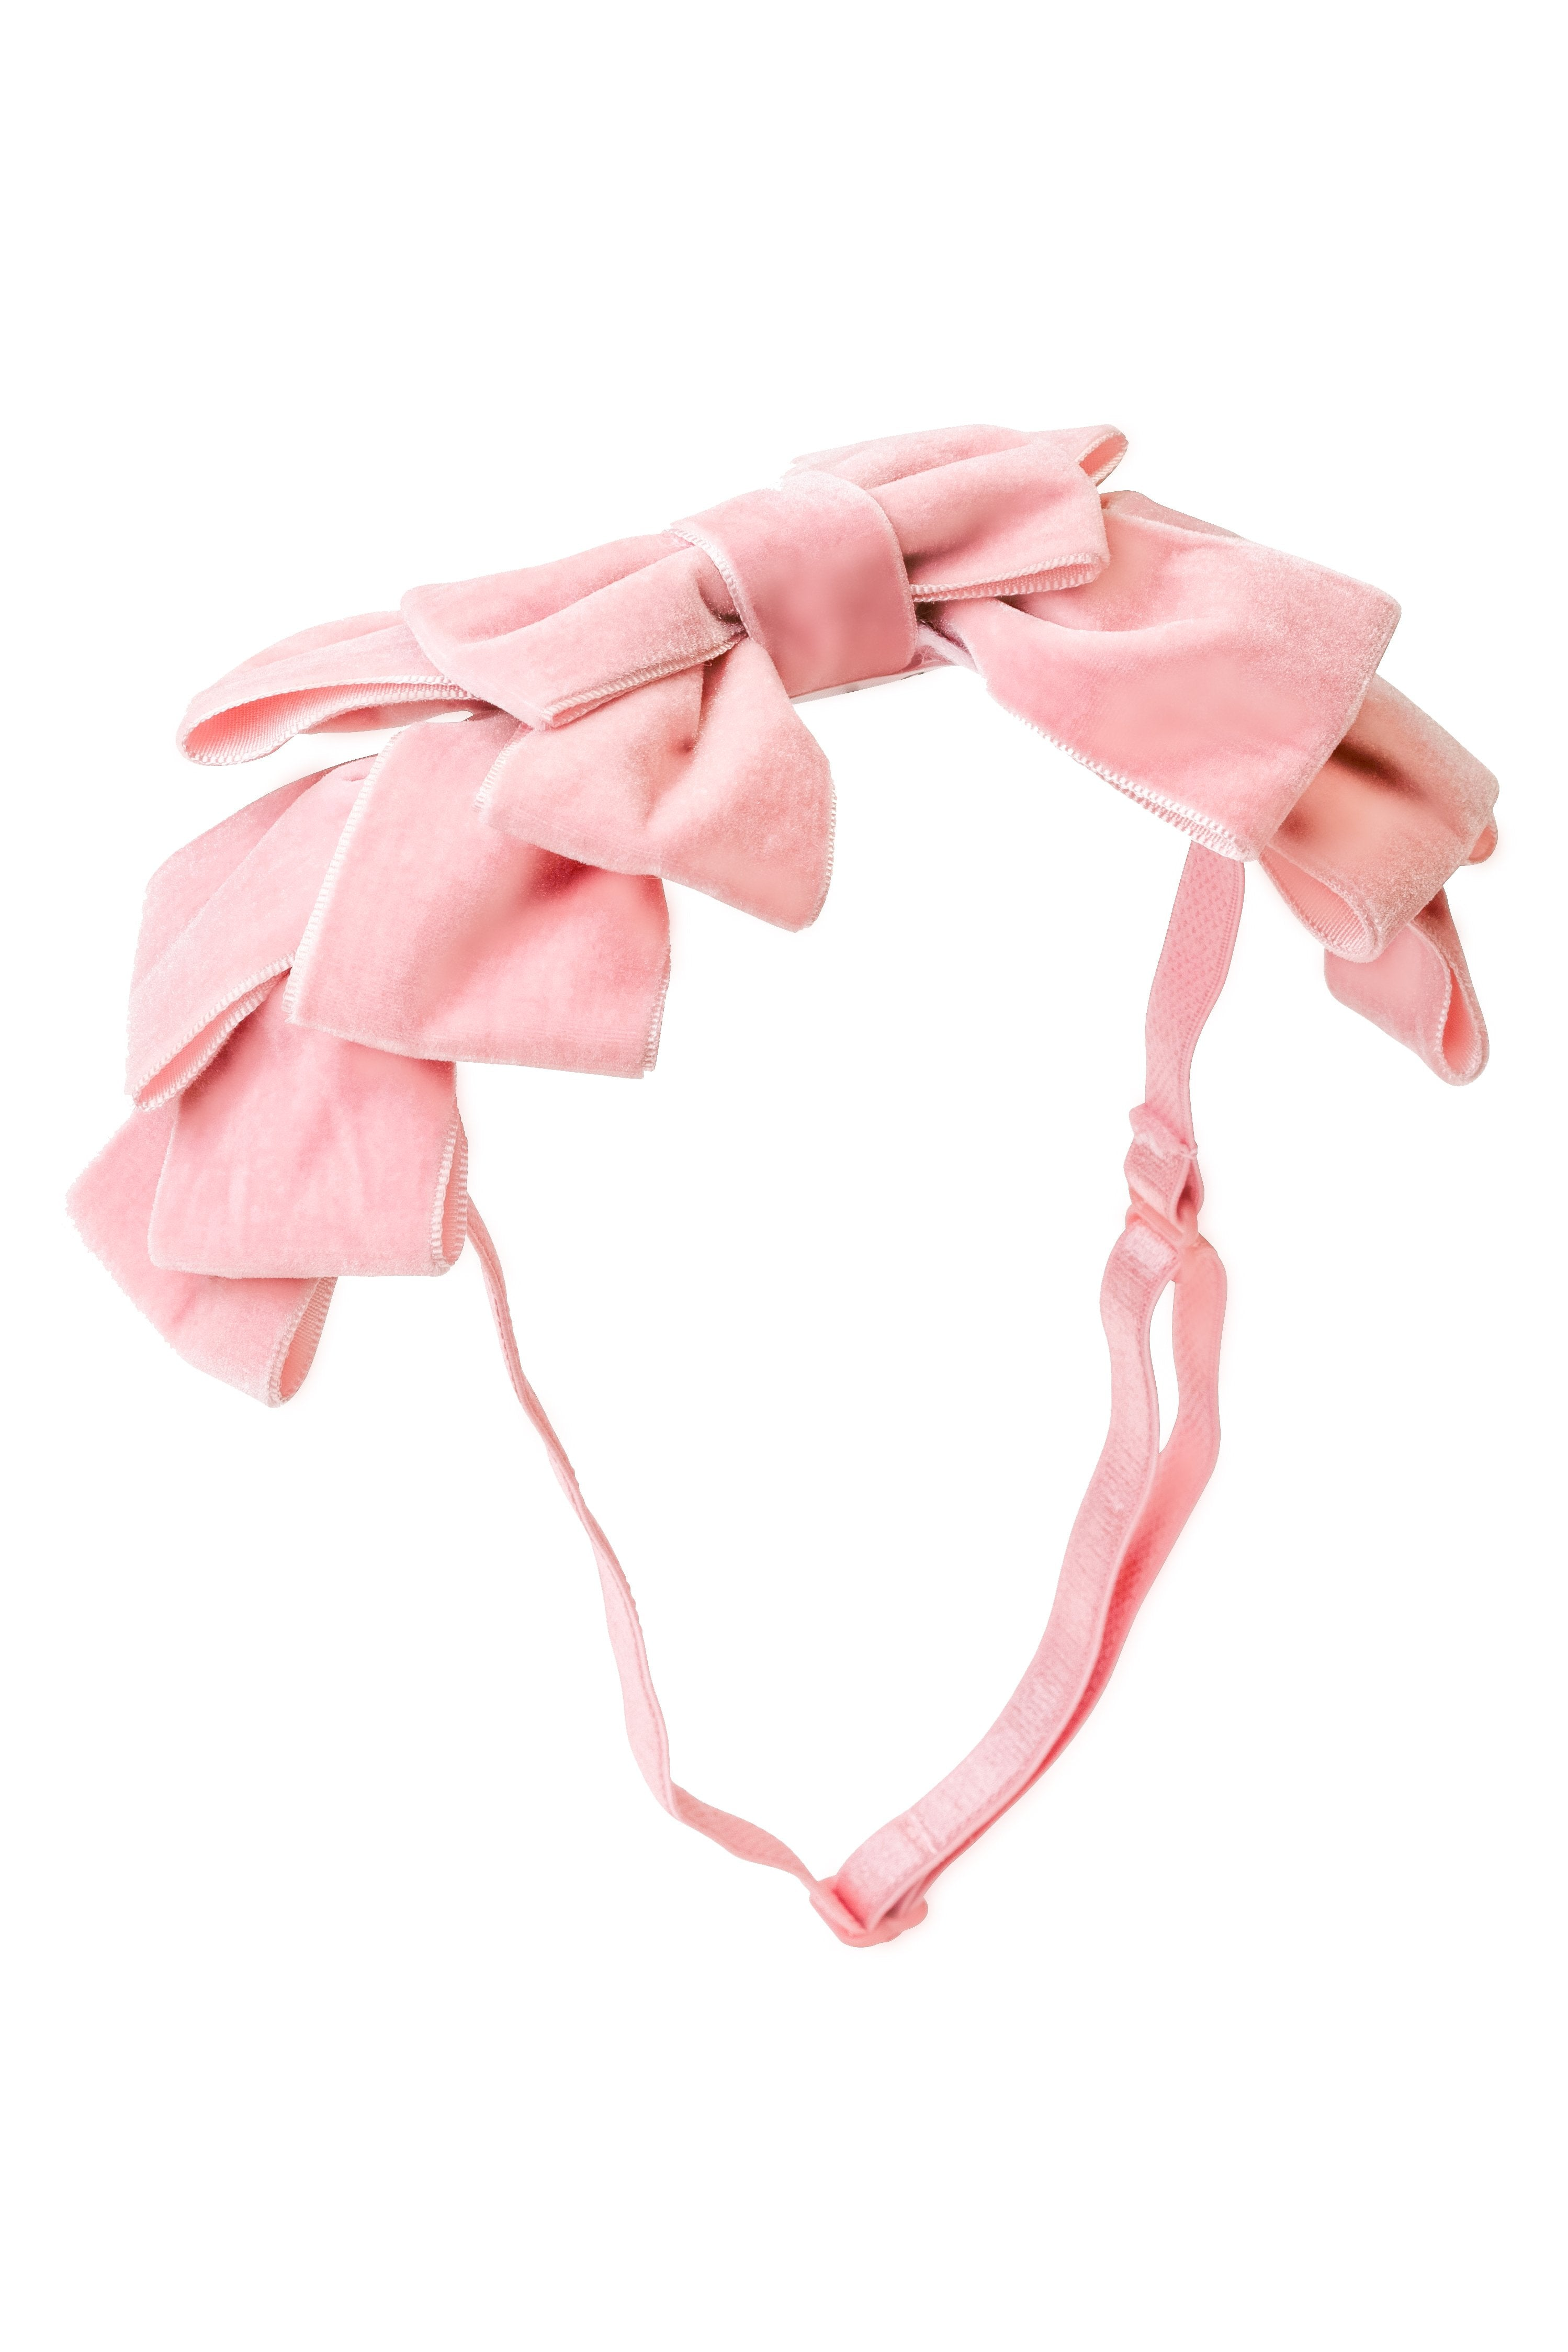 Pleated Ribbon Velvet Wrap - Ballerina Pink - PROJECT 6, modest fashion